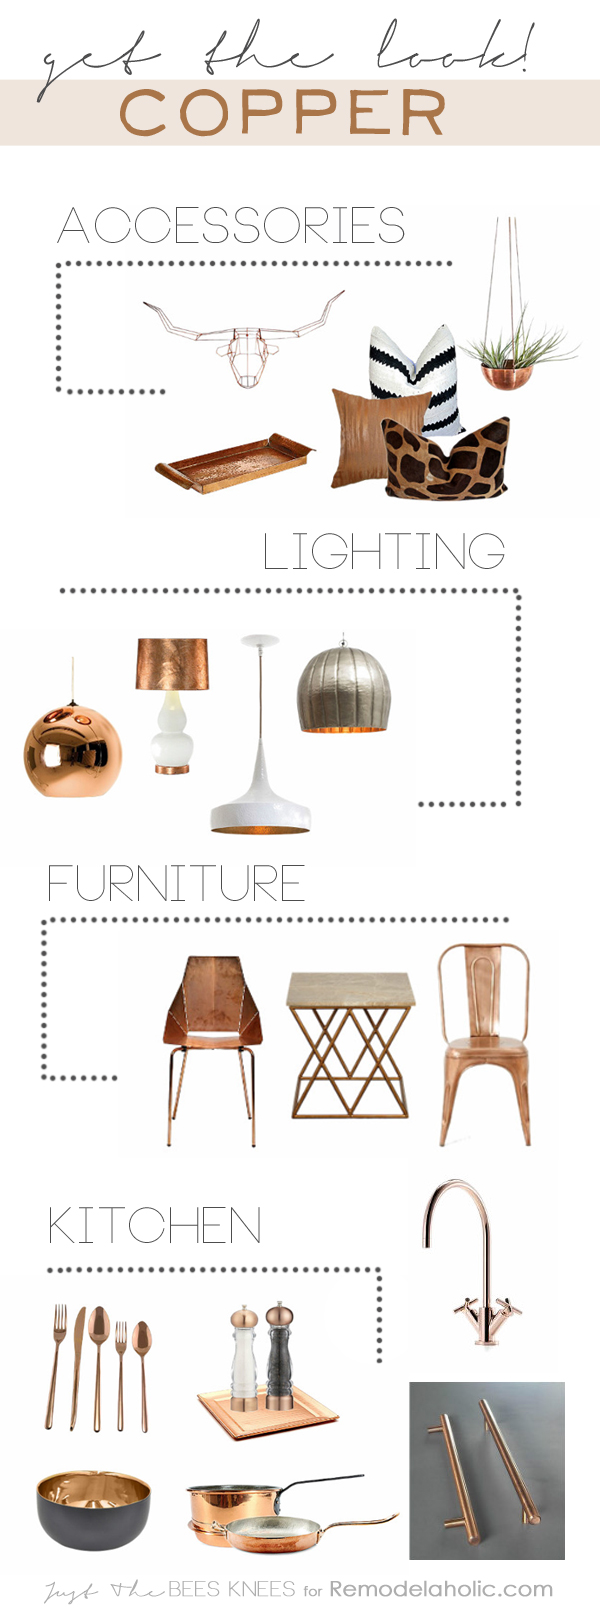 Decorating with copper, the trending classic warm metal, can be as simple as adding a few accessories. See our favorites here.